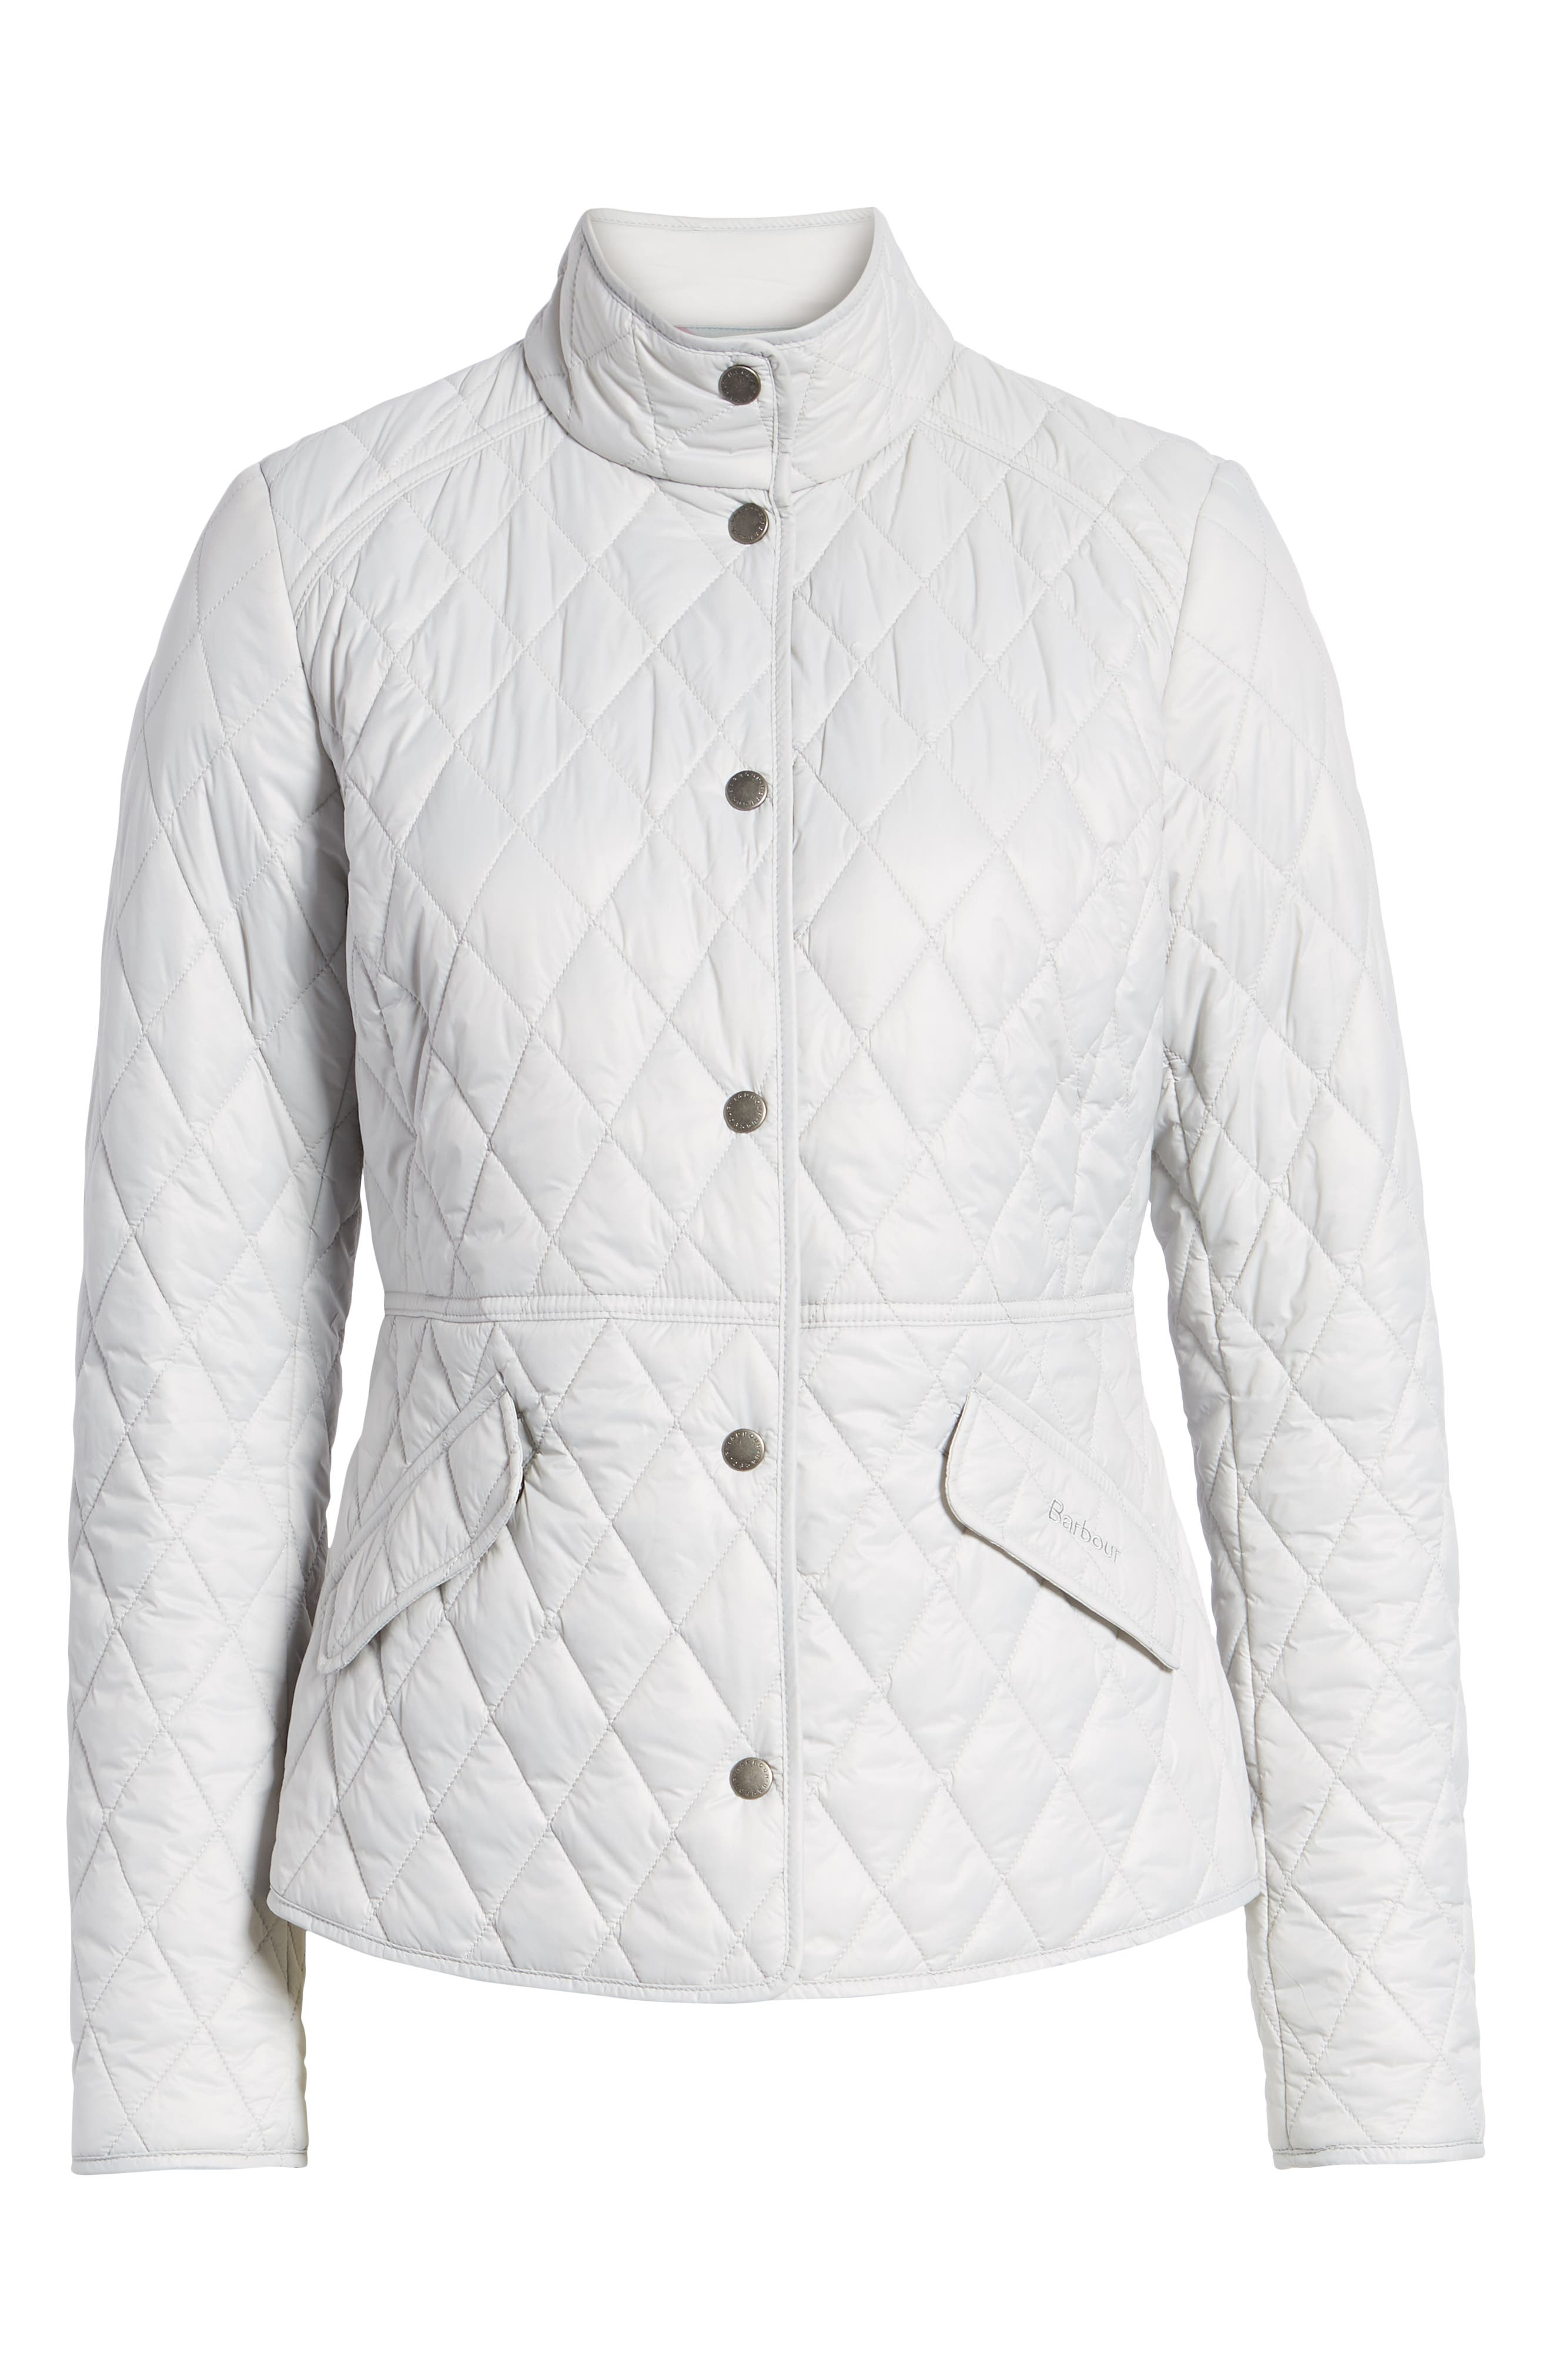 BARBOUR, Annis Quilted Jacket, Alternate thumbnail 6, color, 100